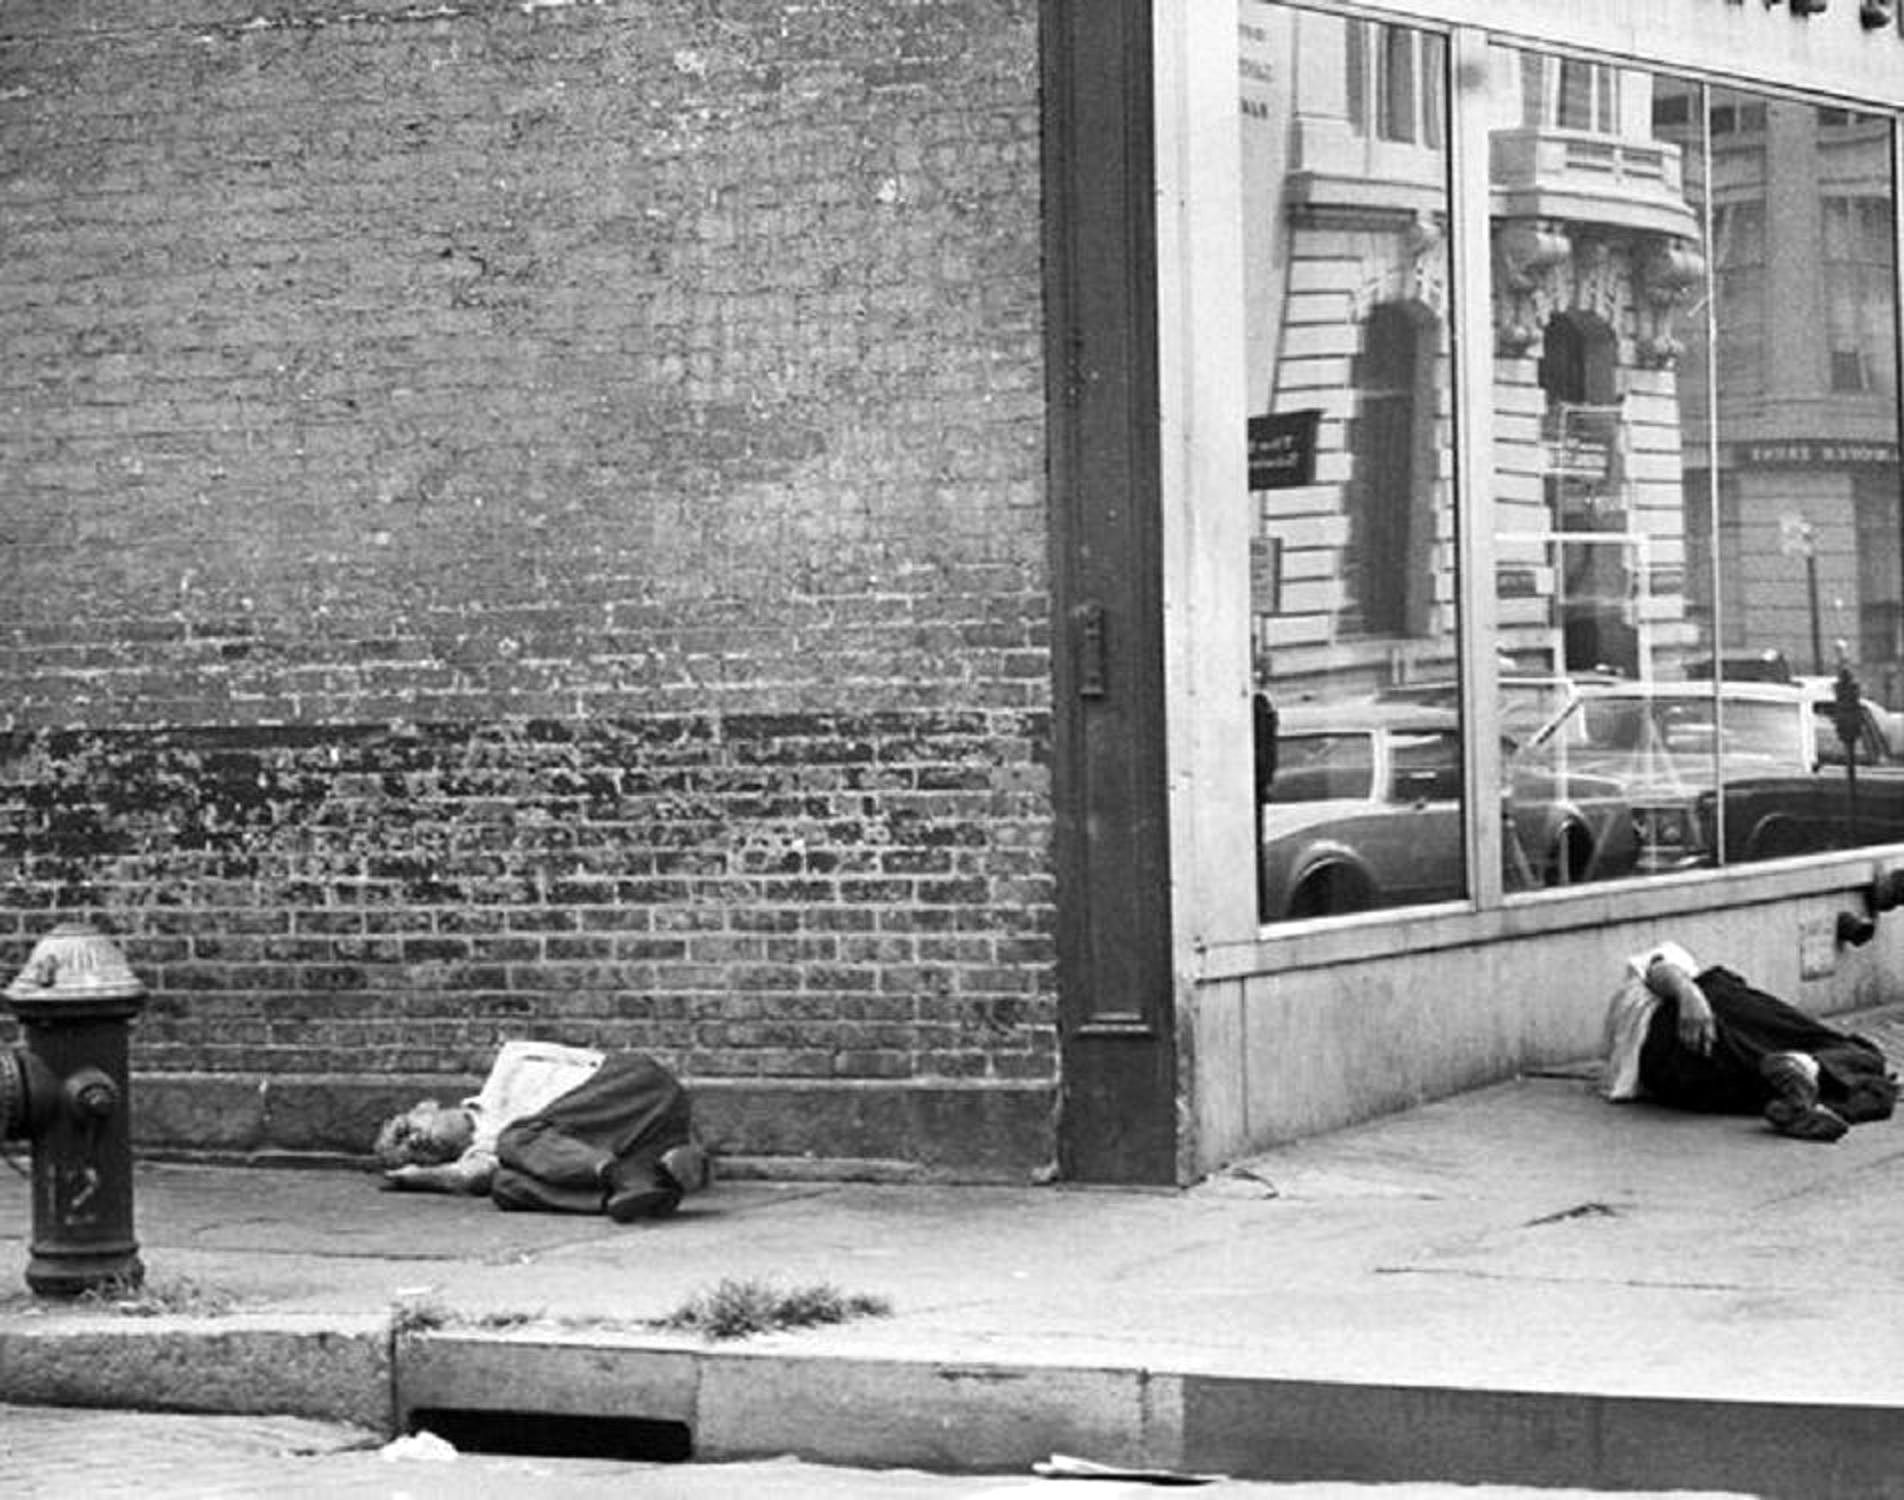 Homeless On Bowery 1970 S Photo By Leland Bobbe Photo From The New York Daily News Archives New York Street New York City Photos New York City